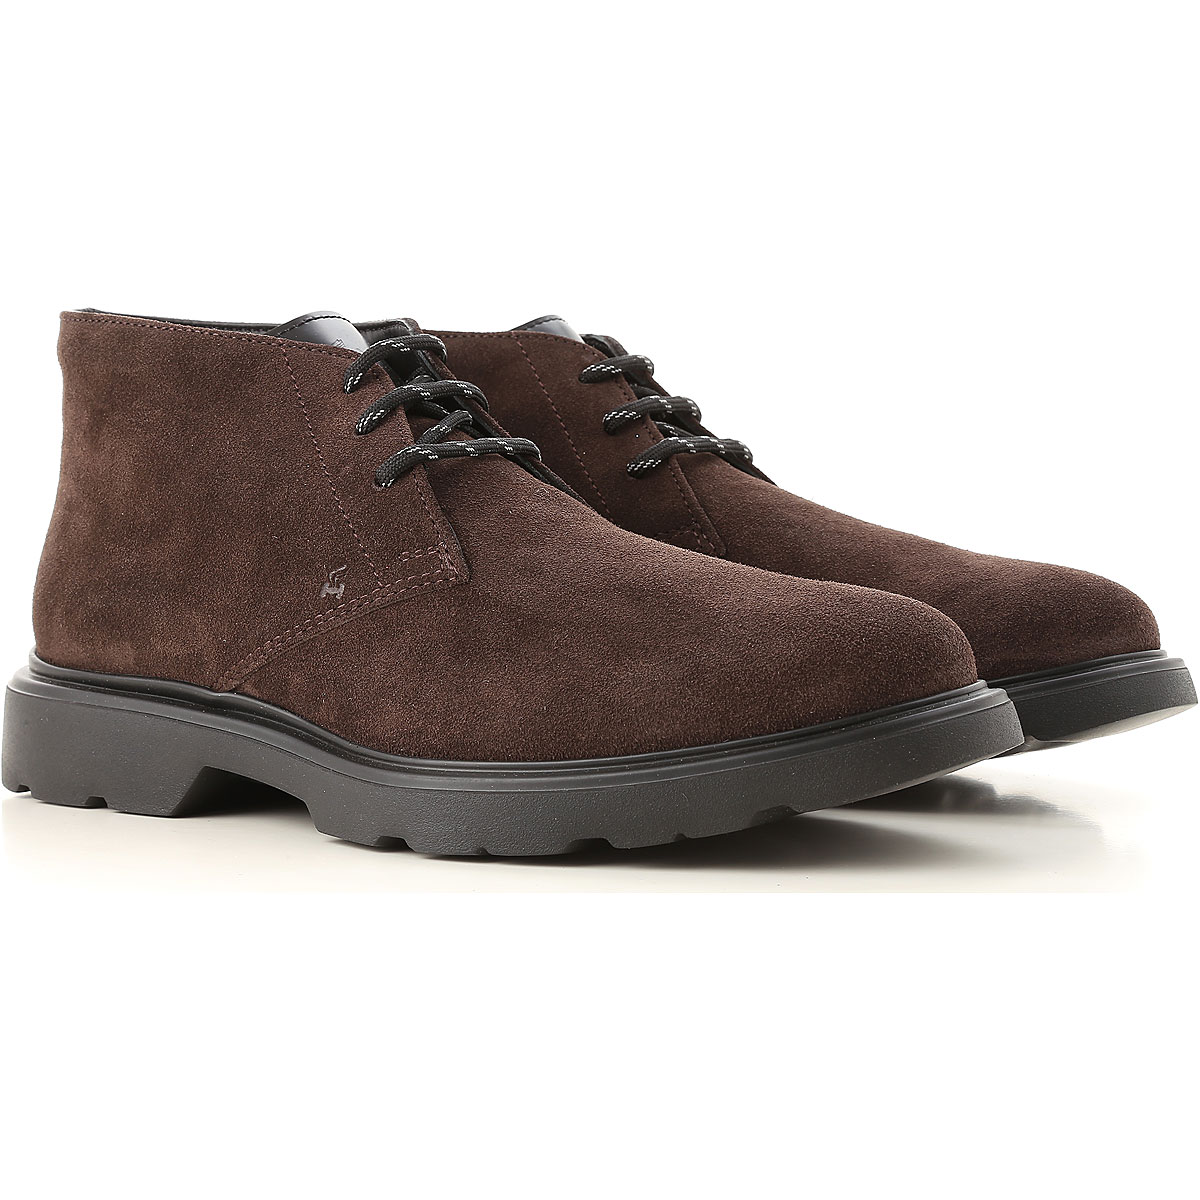 Hogan Boots for Men, Booties On Sale, Dark Brown, suede, 2019, 10 7 7.5 9 9.5